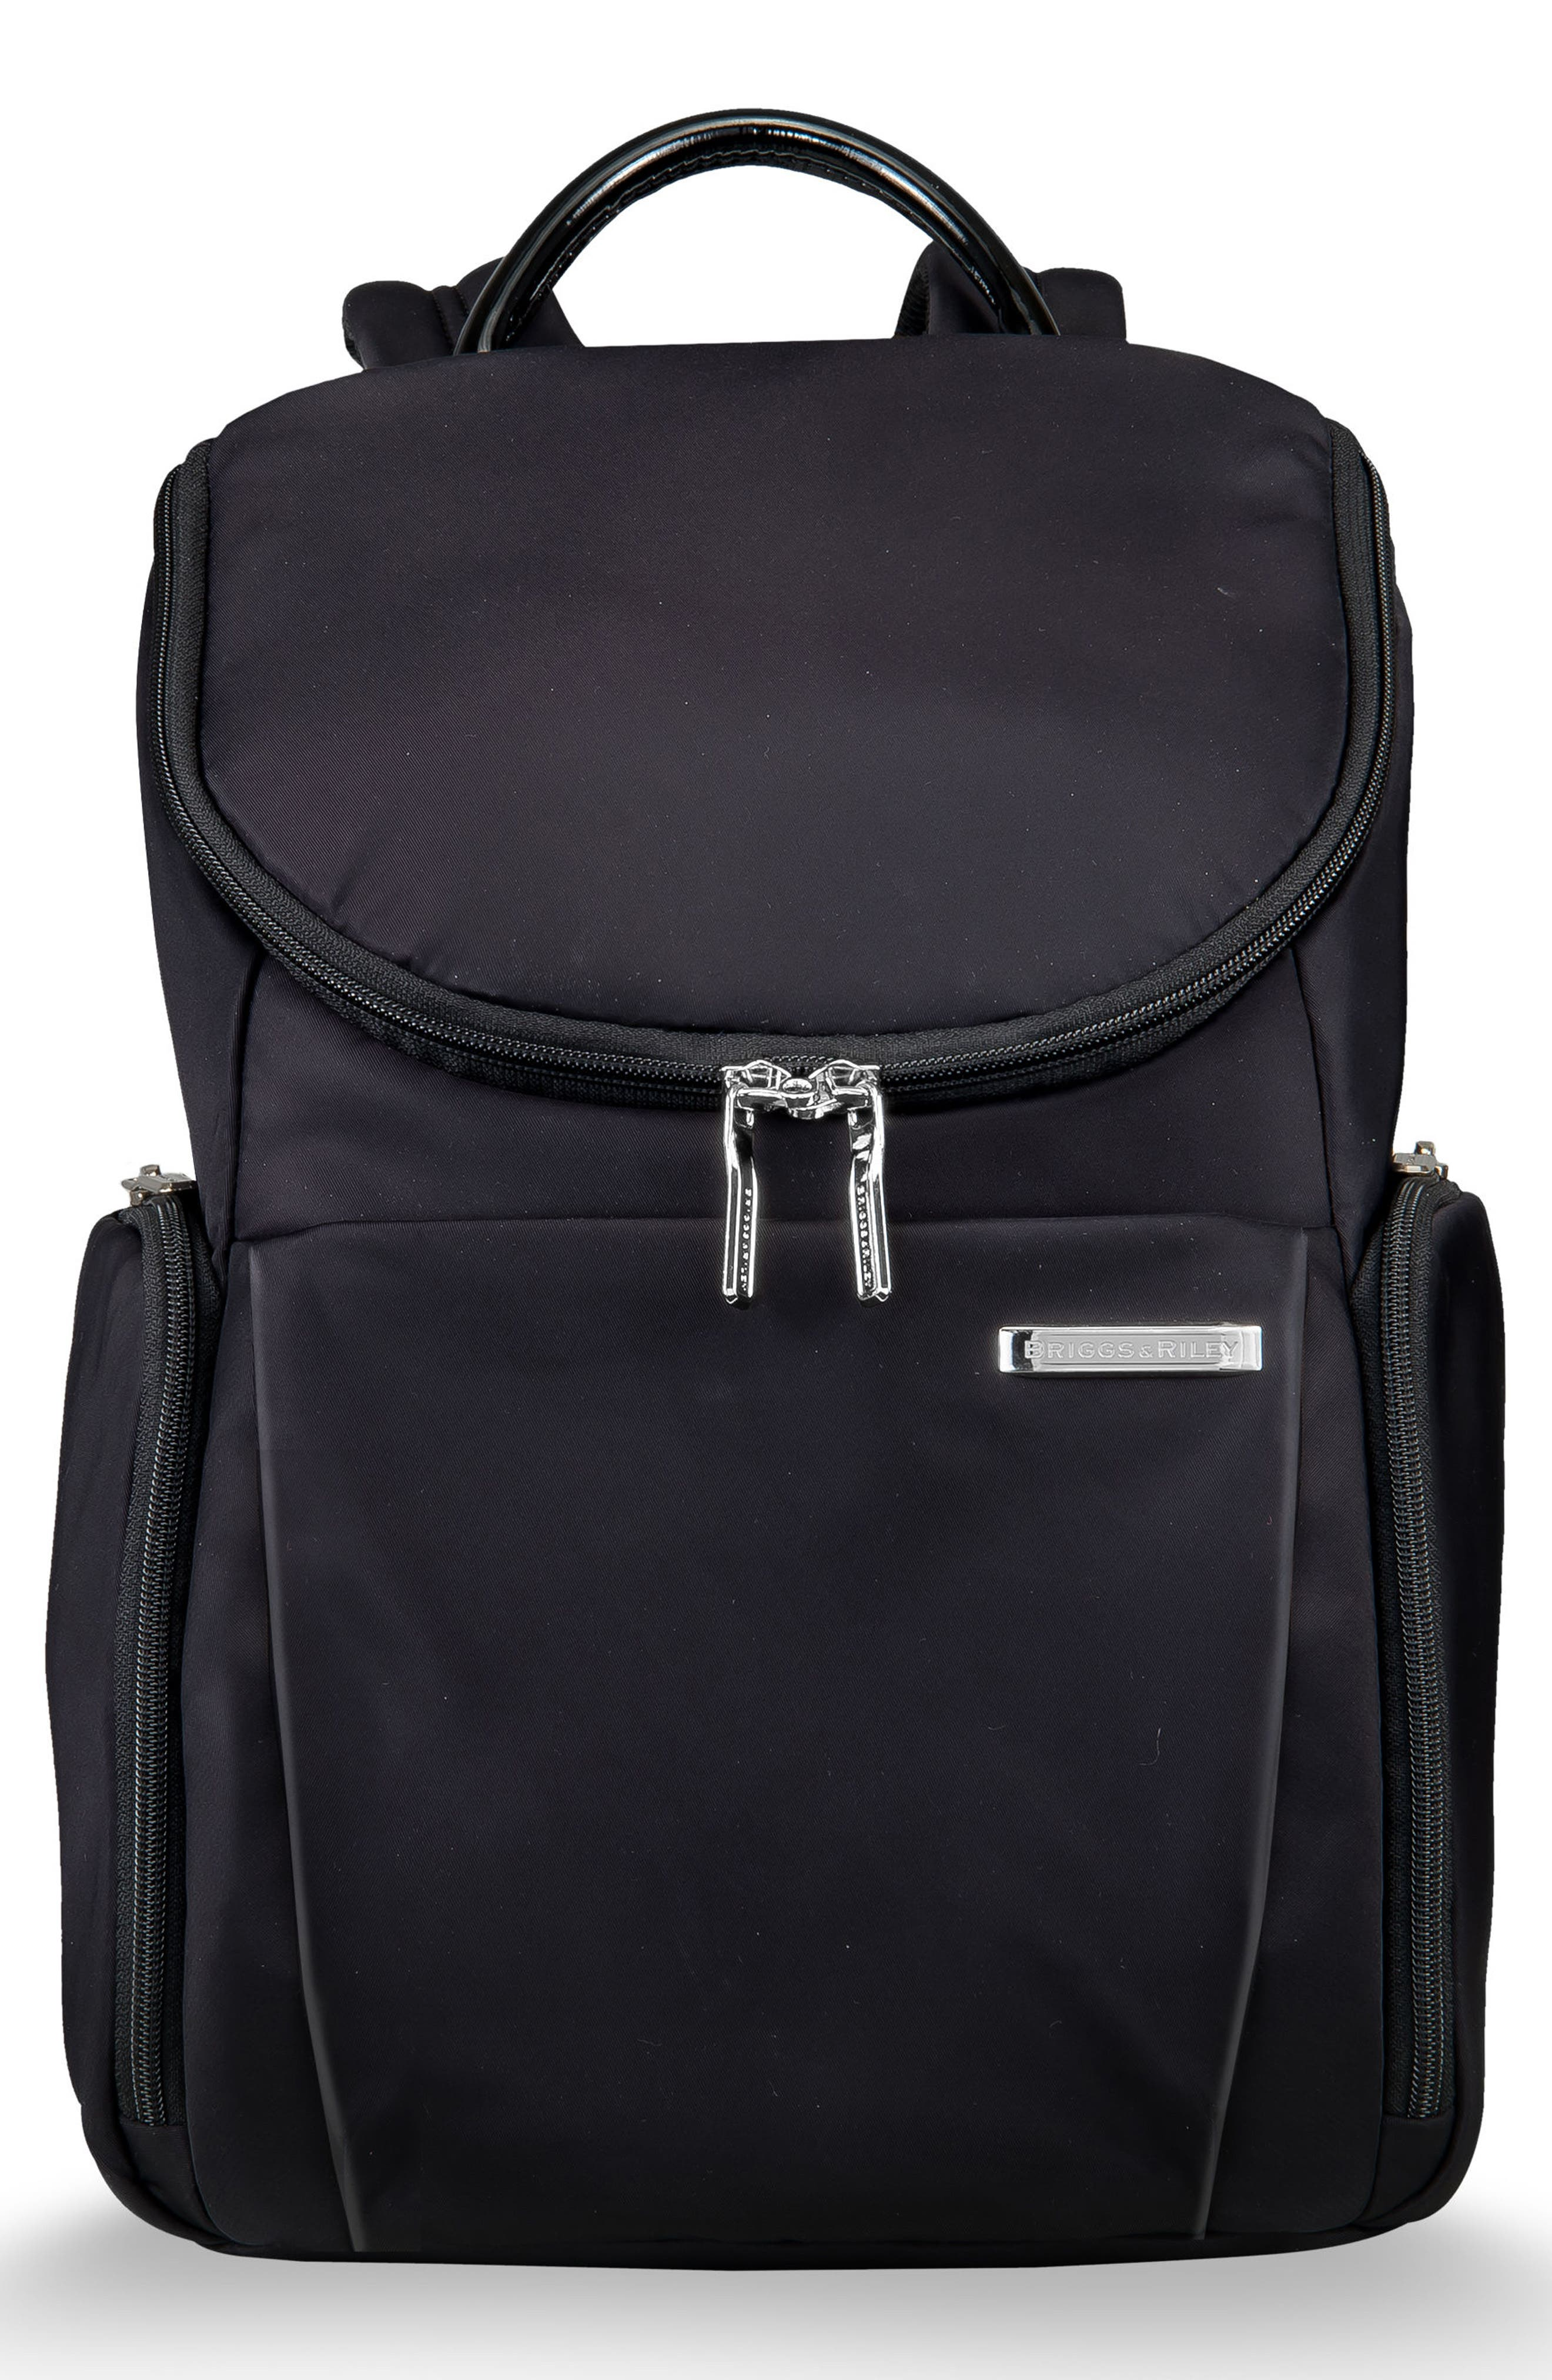 BRIGGS & RILEY Sympatico Nylon Backpack